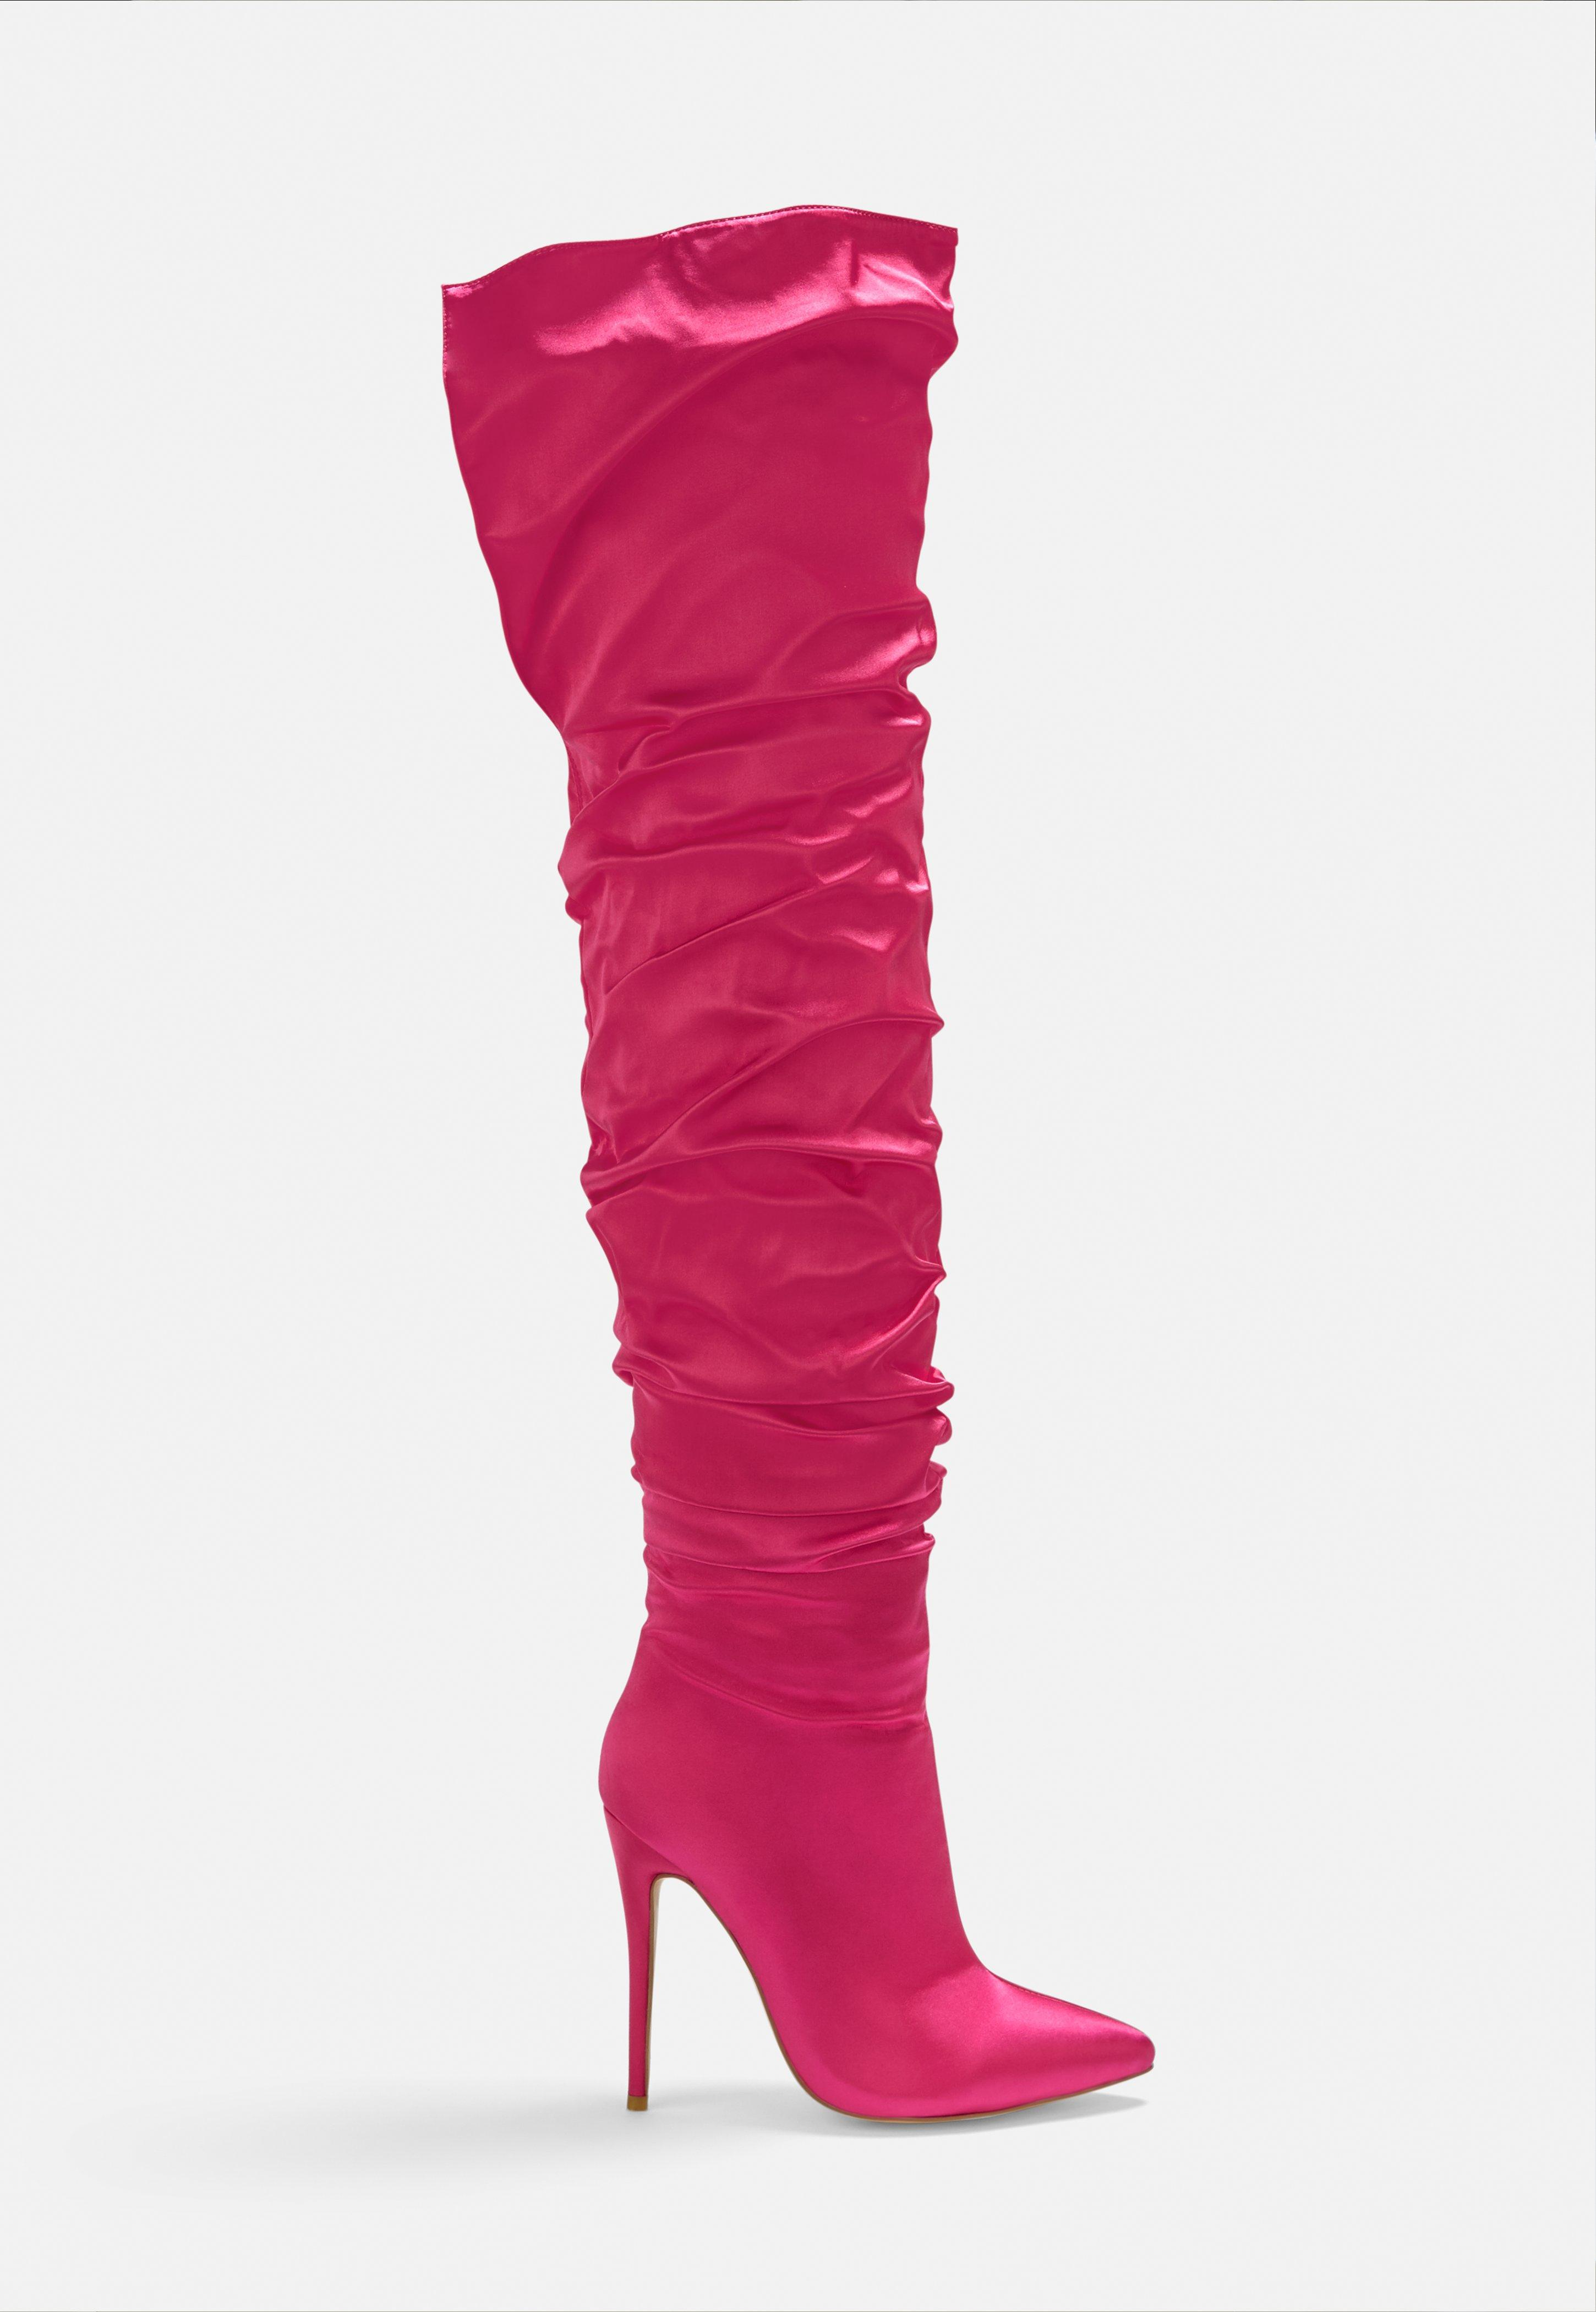 72ec6d3095a Pink Satin Ruched Long Slit Boots